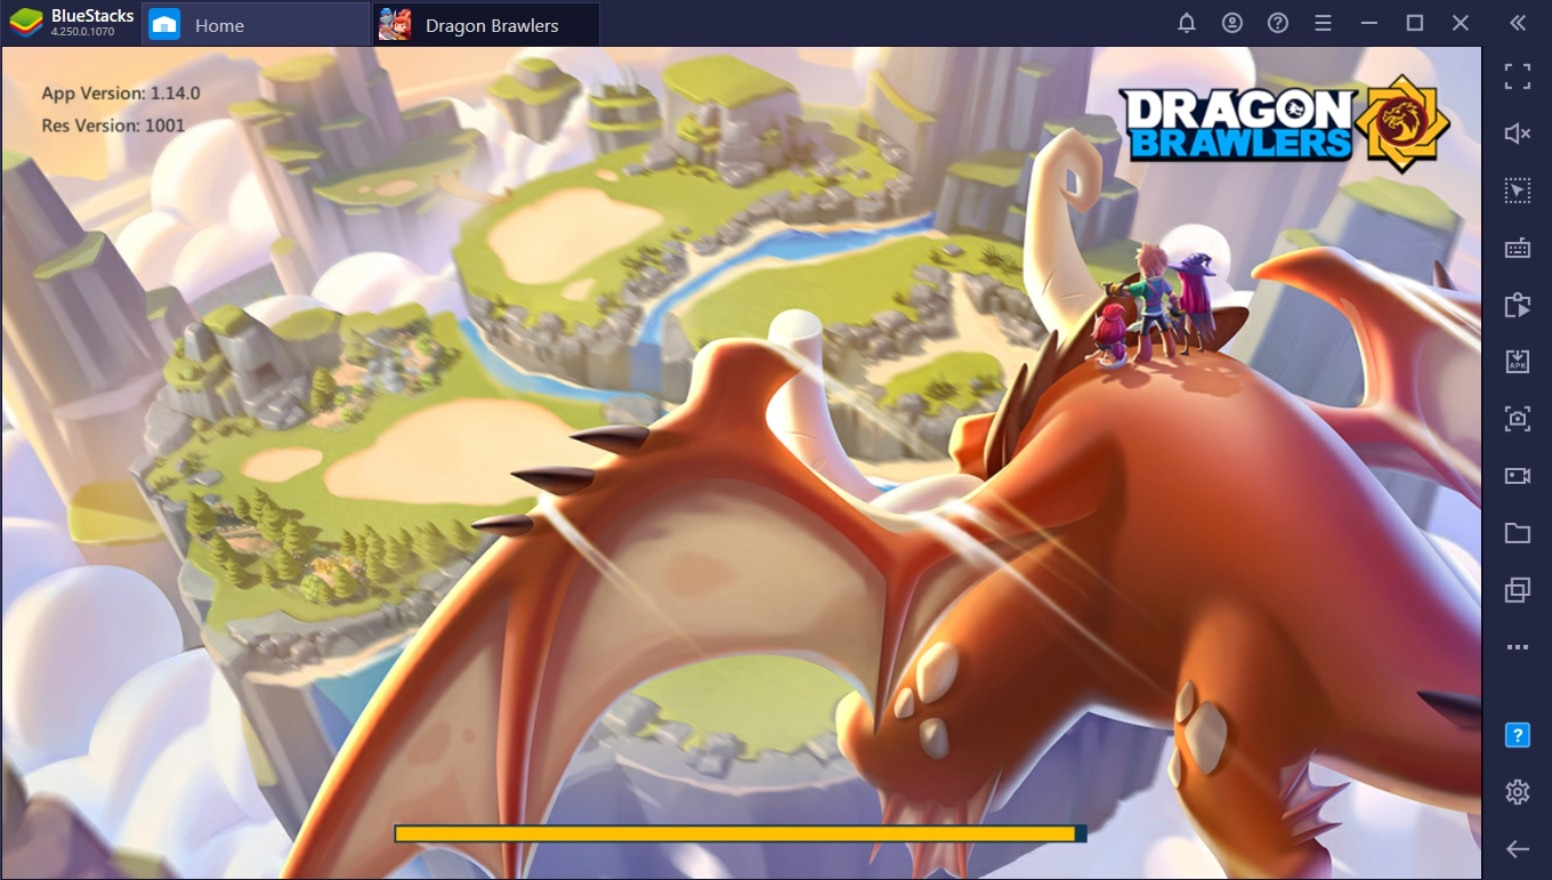 How to Play Dragon Brawlers On PC With BlueStacks